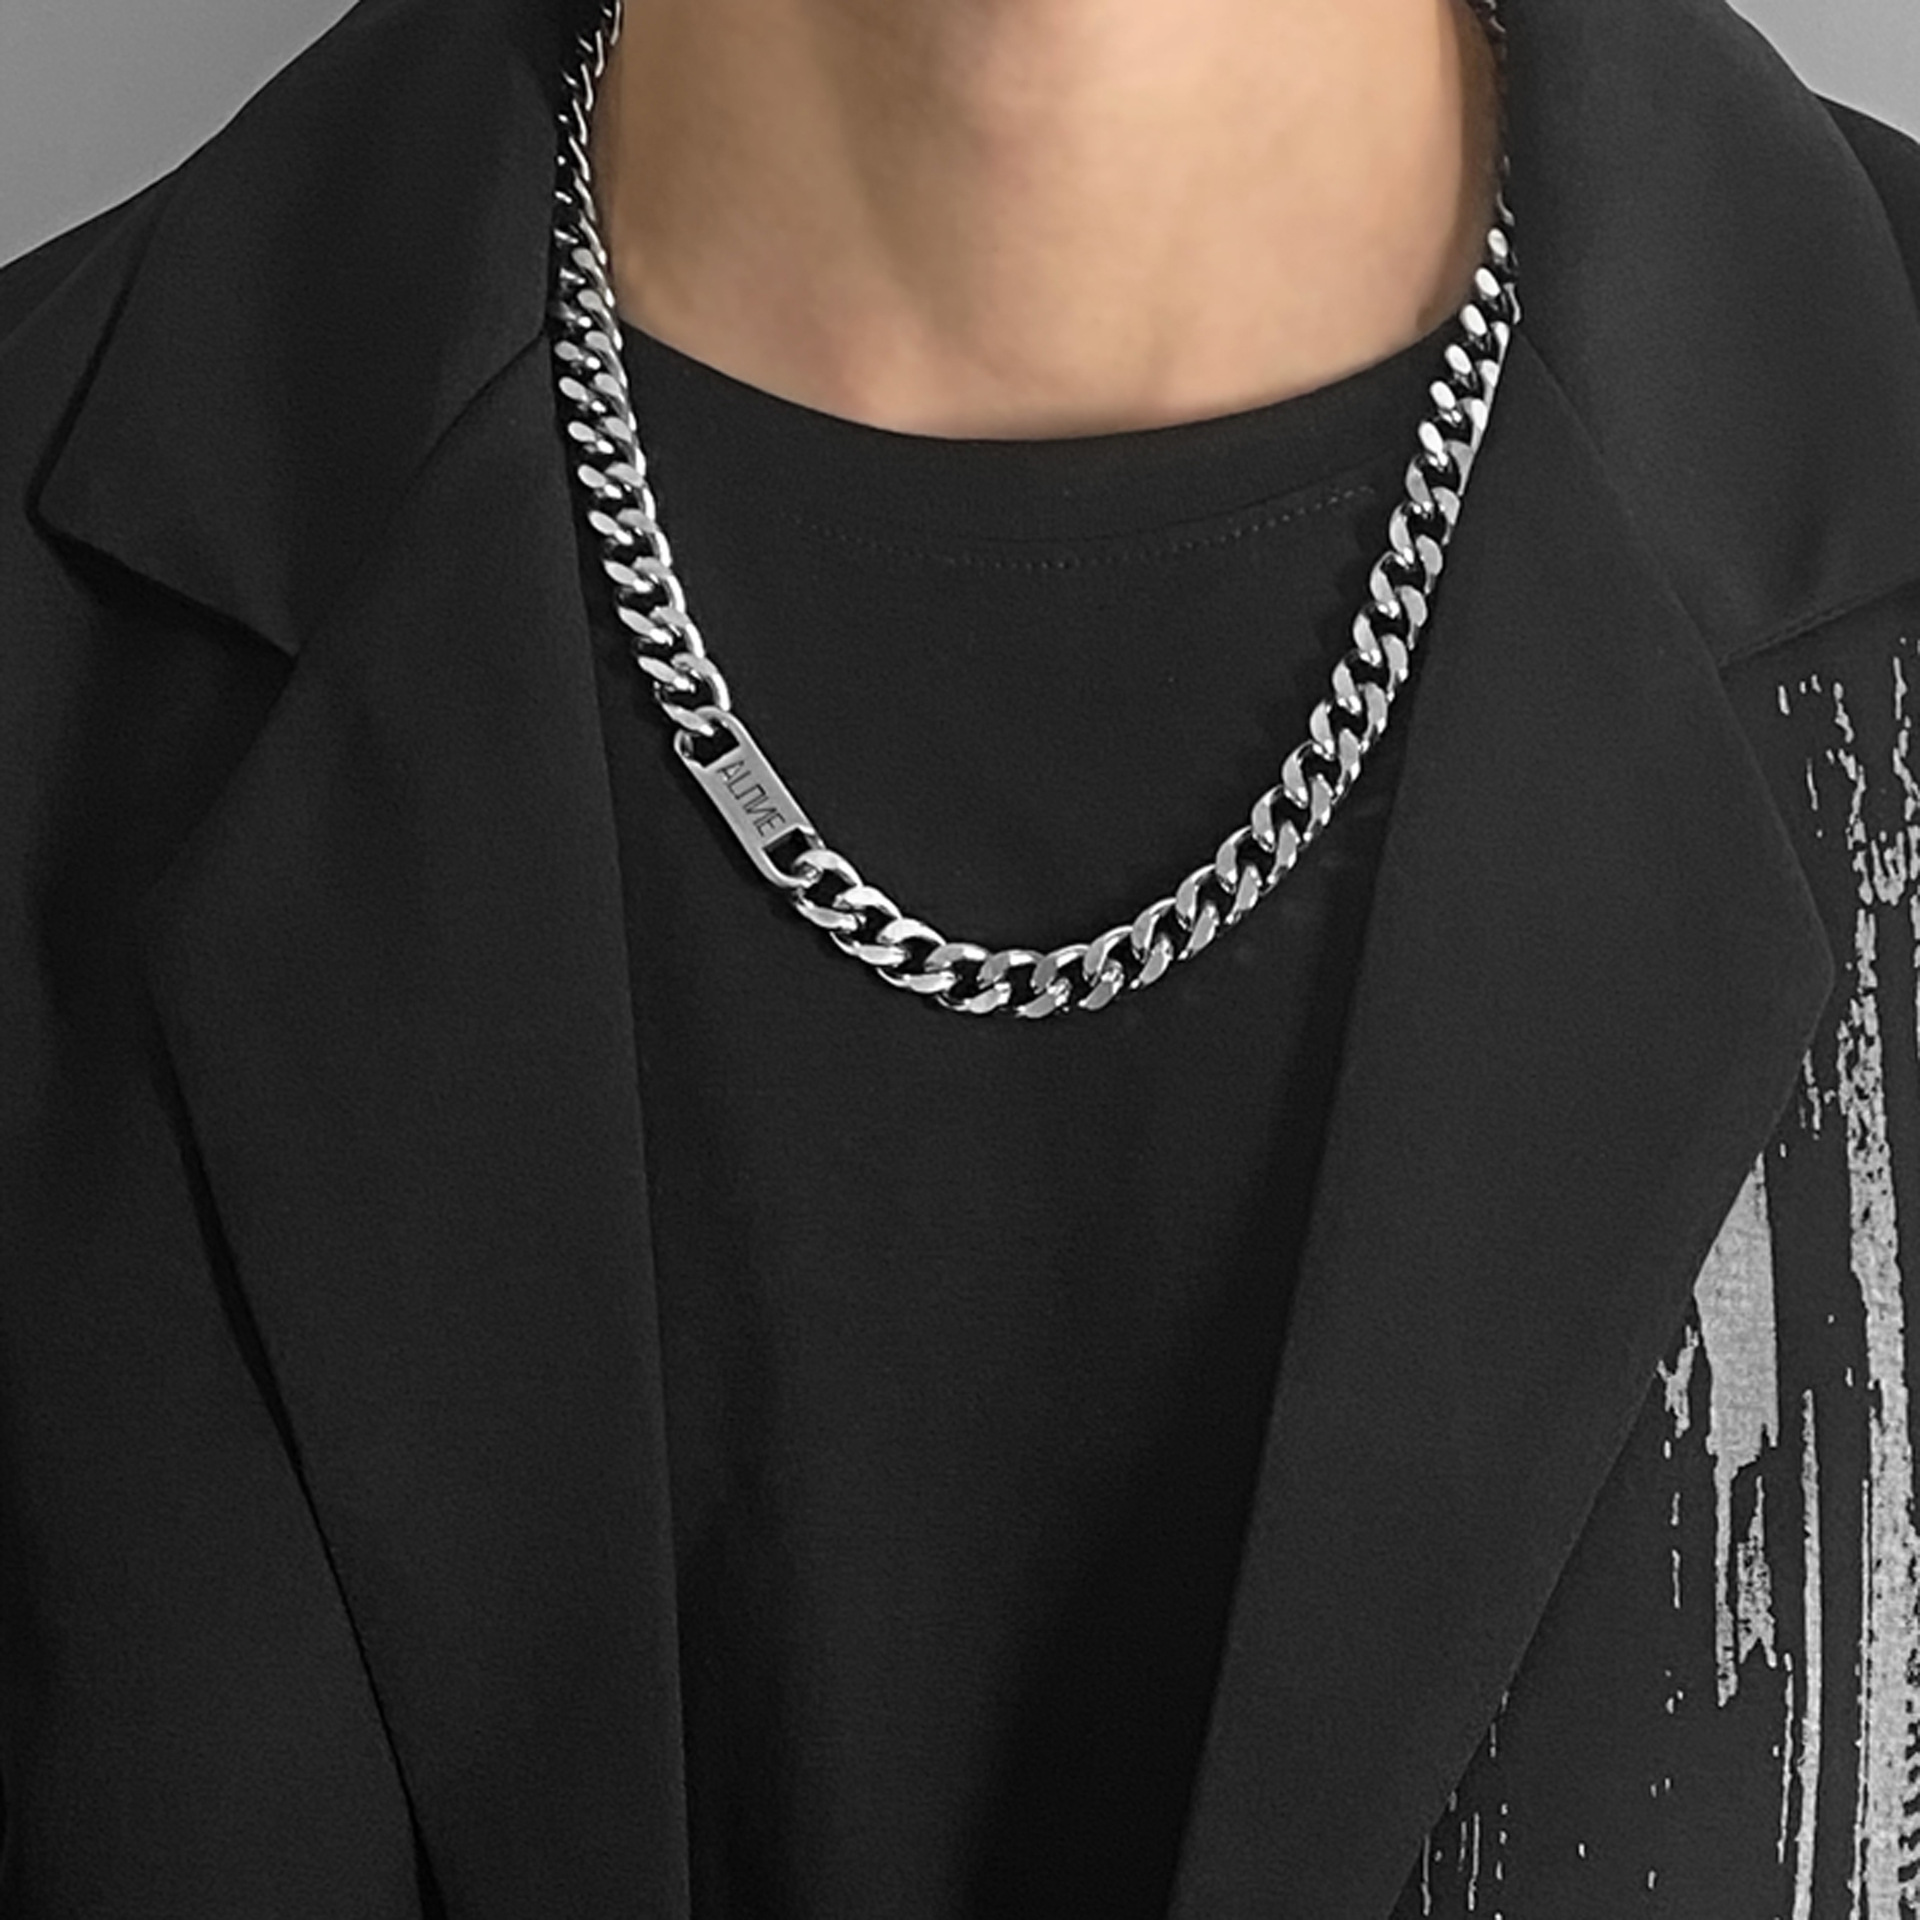 Western Style Necklace for Hip-hop Men's Fashion